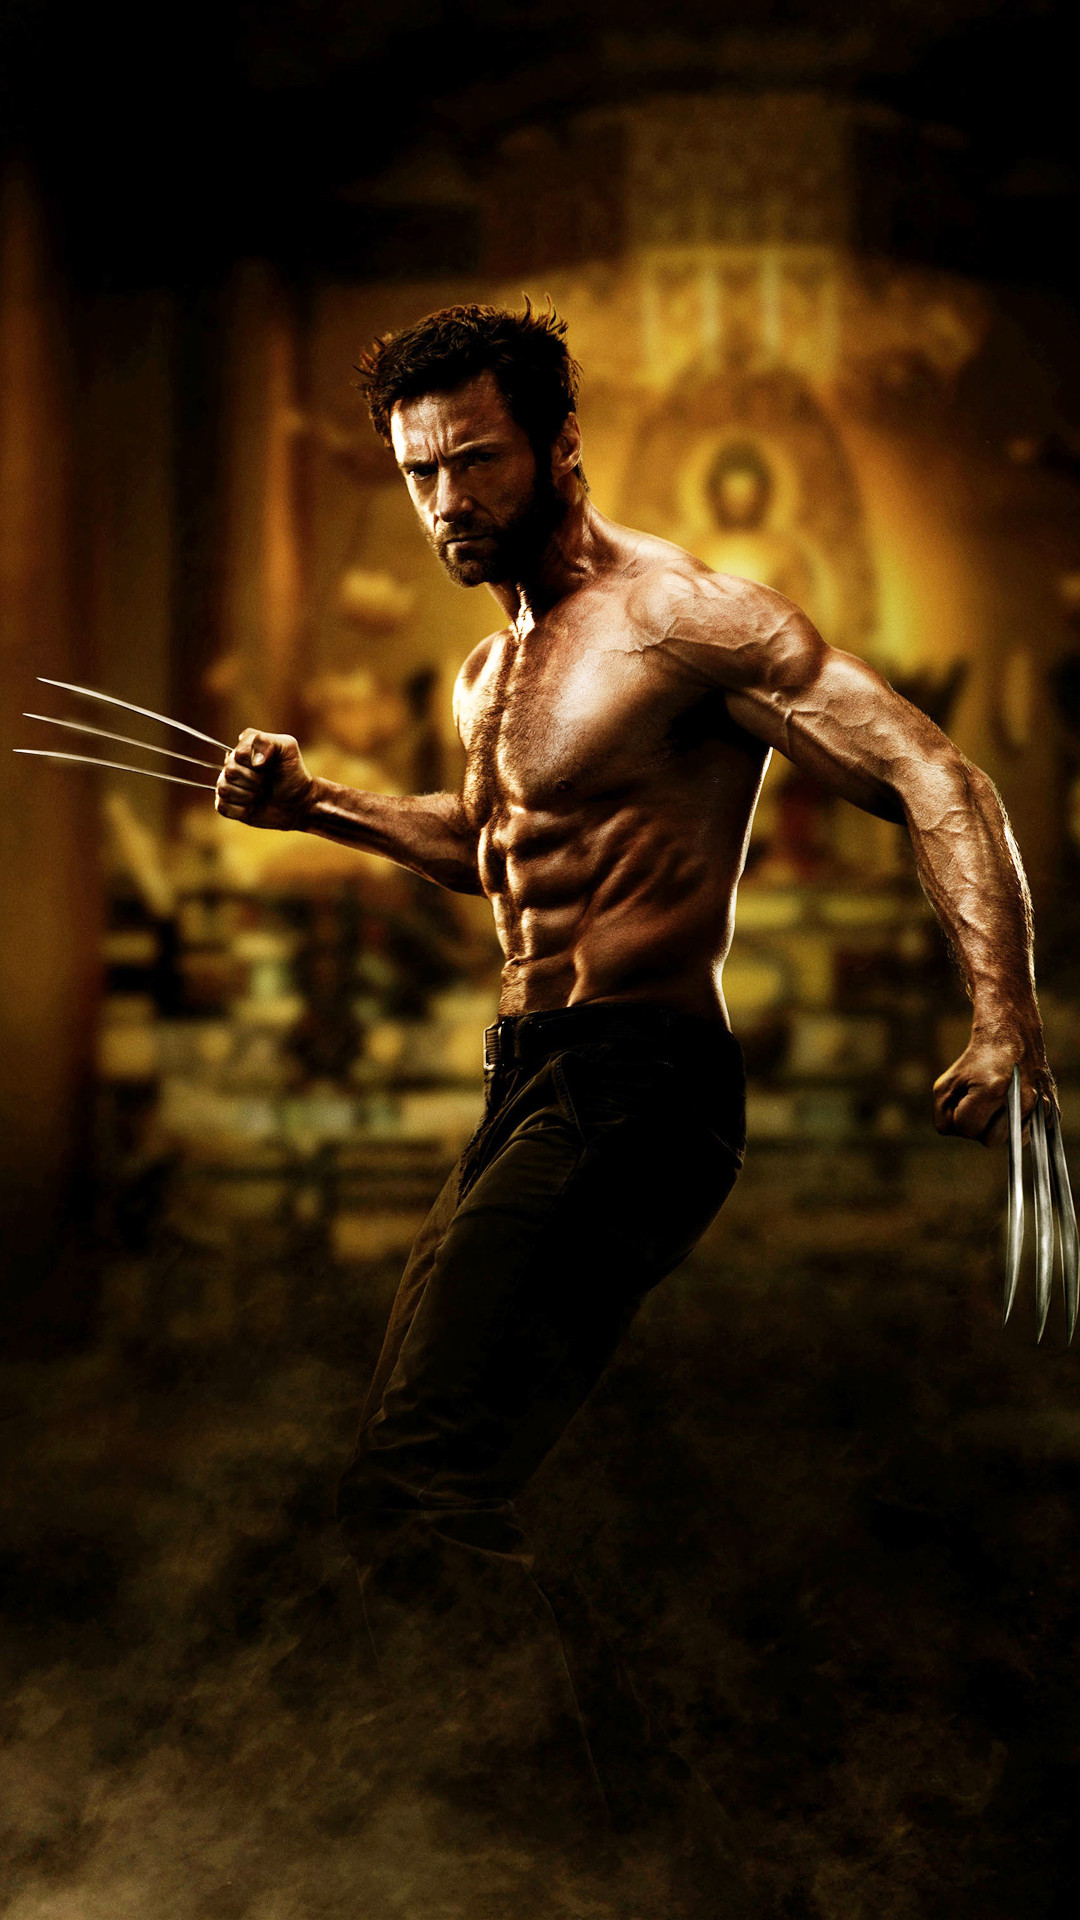 HTC One Wallpapers: Wolverine HD android wallpaper Android Wallpapers .